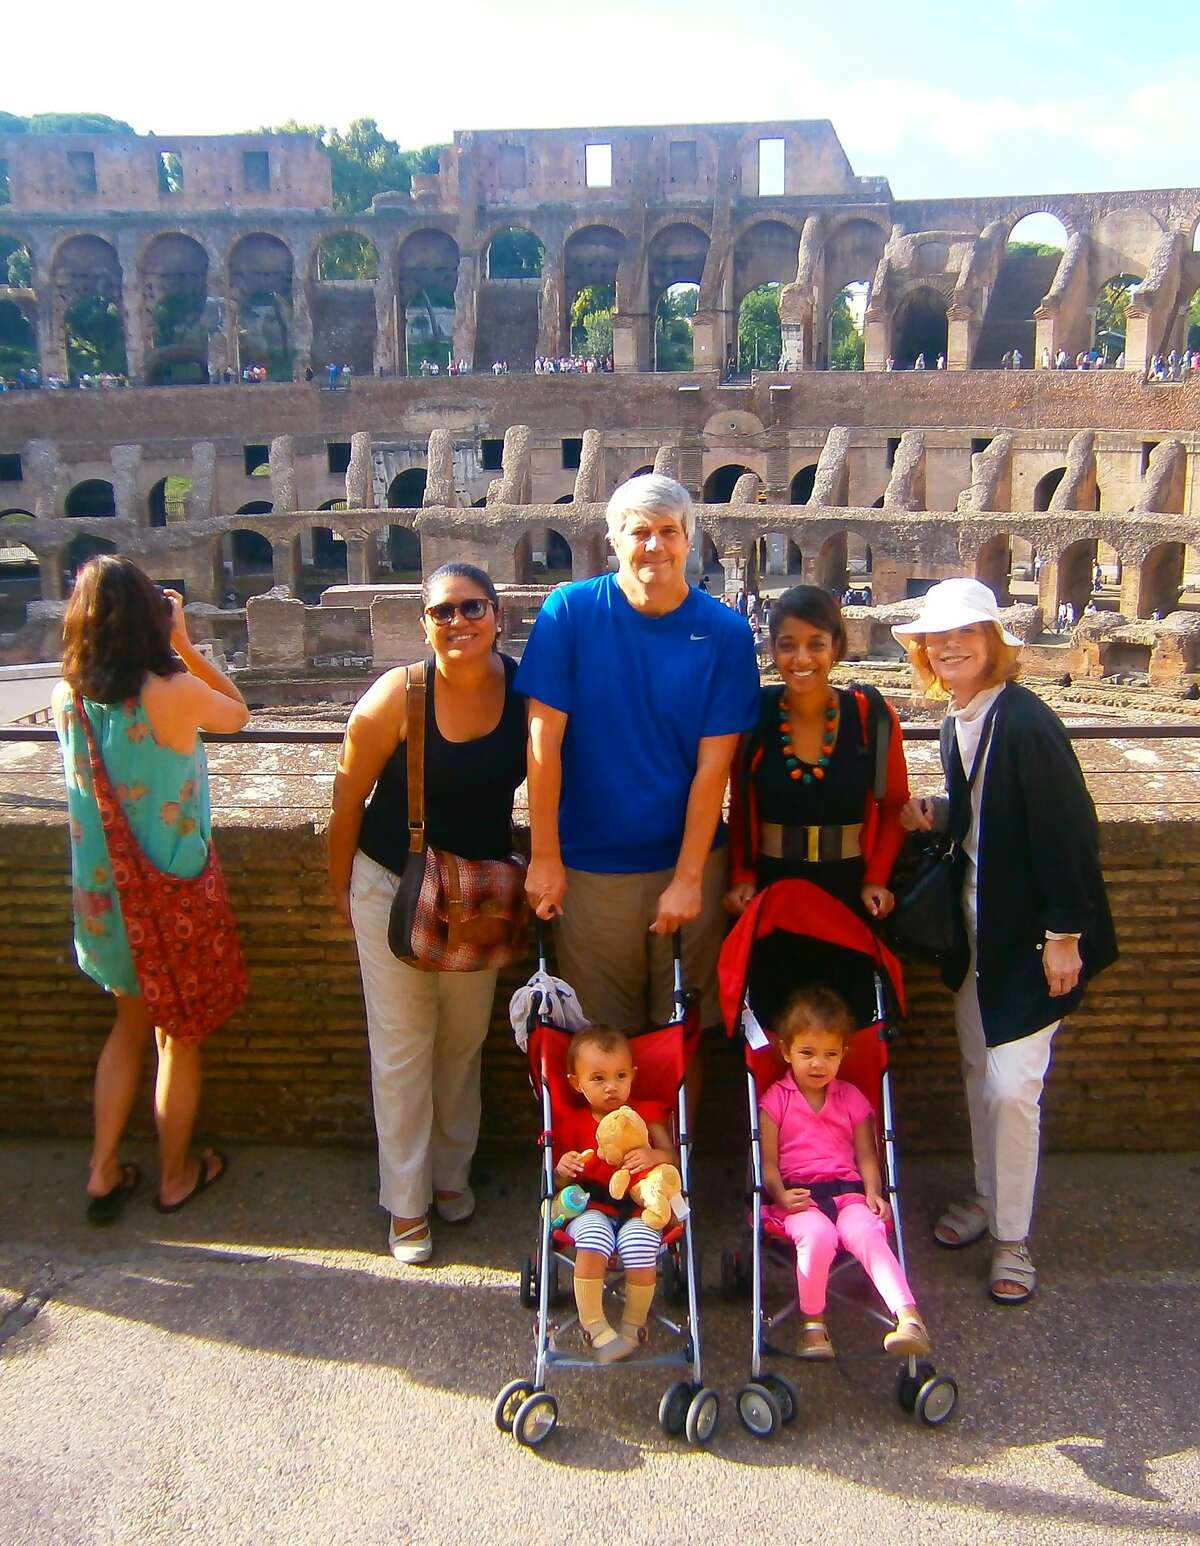 The Cuyler-Pecot family on vacation in Italy in 2013 with, from left, their former au pair Patricia Cerron, dad Devin Cuyler, mom Reese Pecot and Devin's mom Blythe Rainey-Cuyler. In the strollers are Quinn Cuyler, left, and Maxine Cuyler, right.